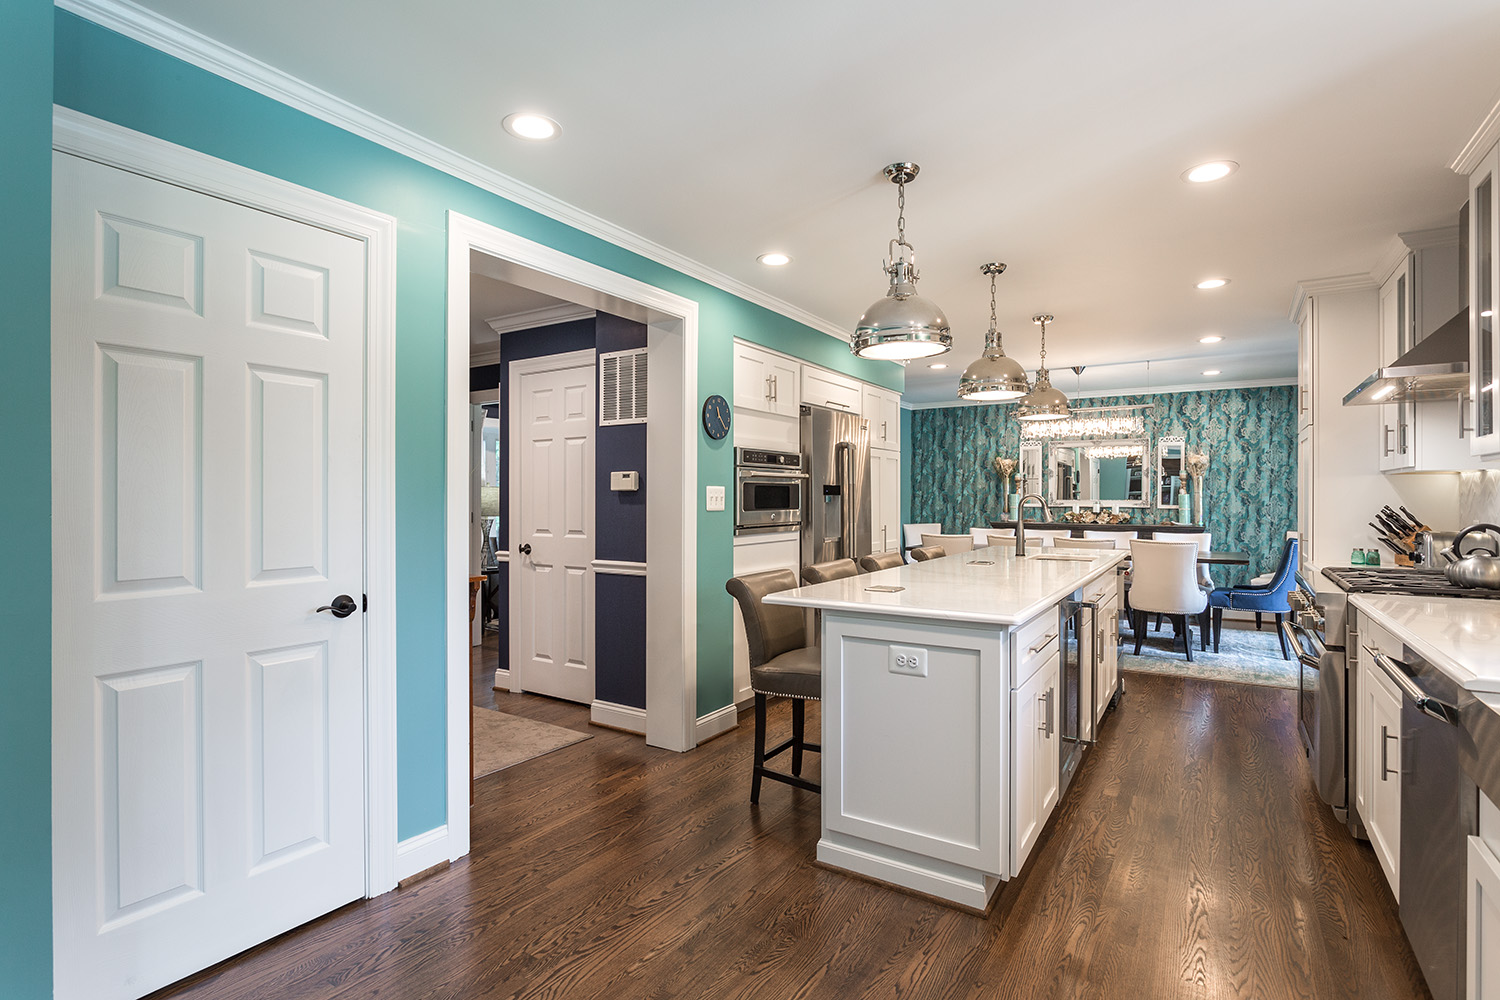 Home additions to open up your home